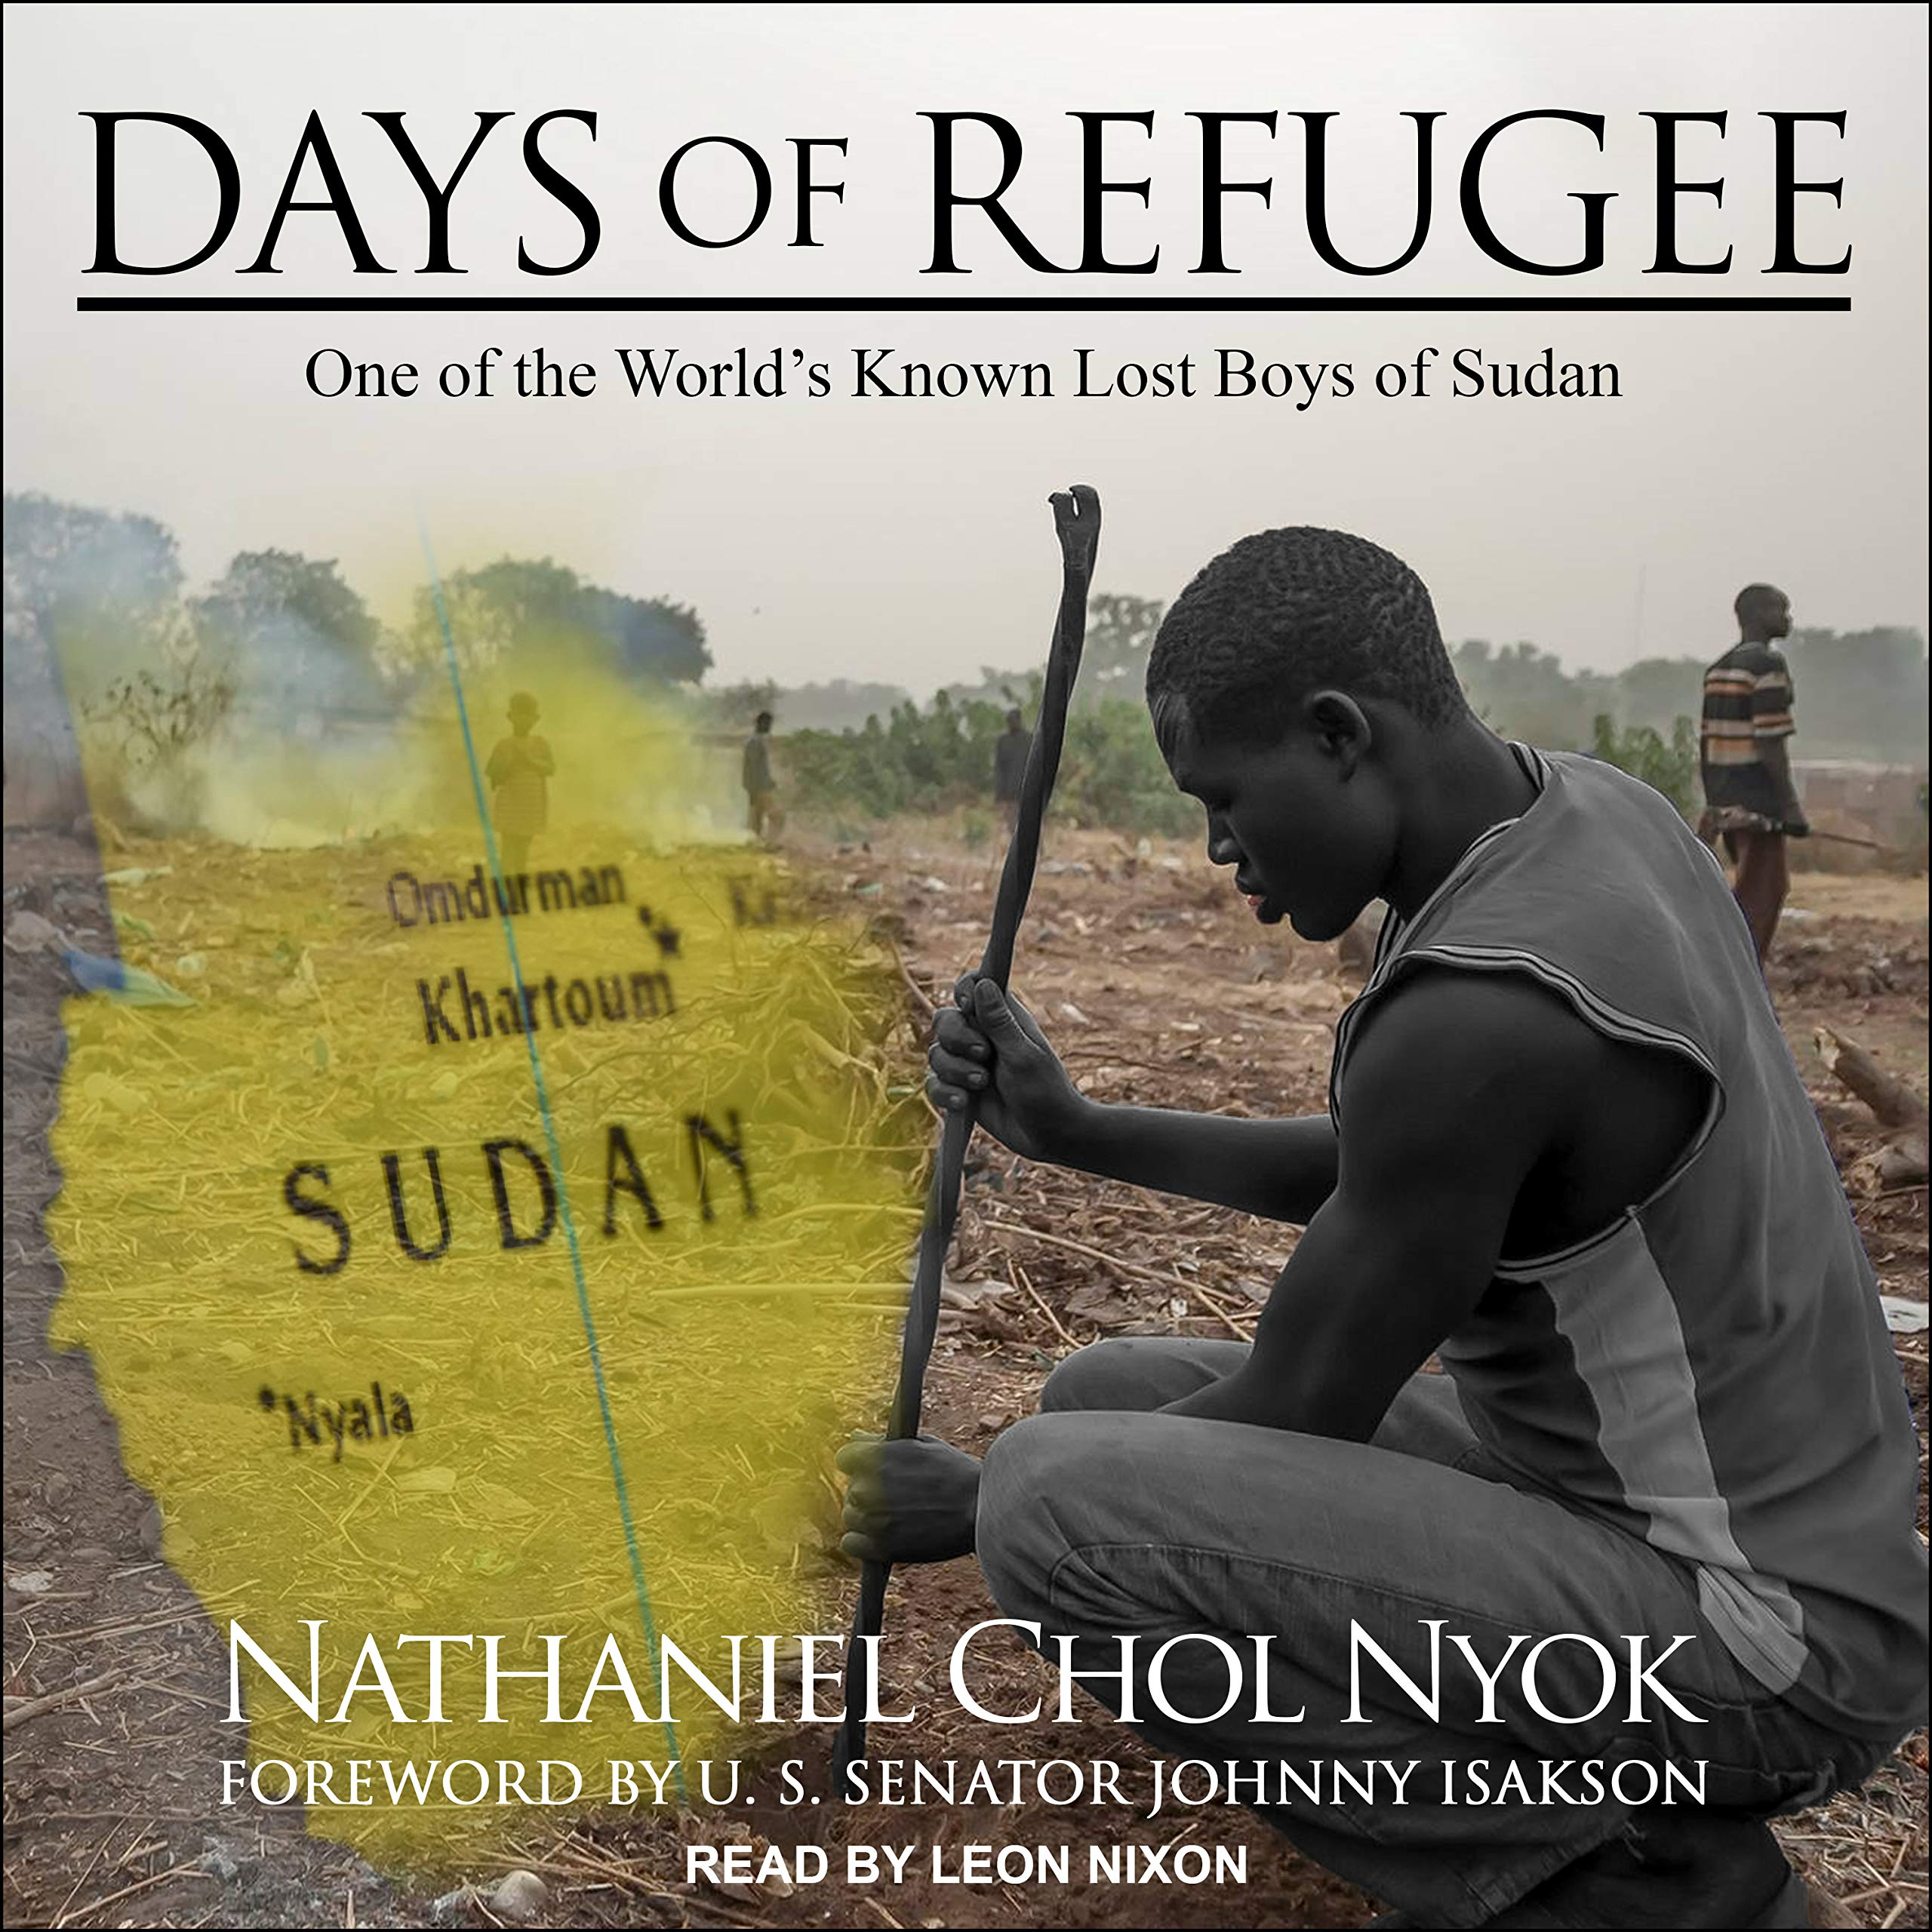 Days Of Refugee One Of The Worlds Known Lost Boys Of Sudan Nyok Nathaniel Chol Nixon Leon Isakson Johnny 9781977365897 Amazon Com Books